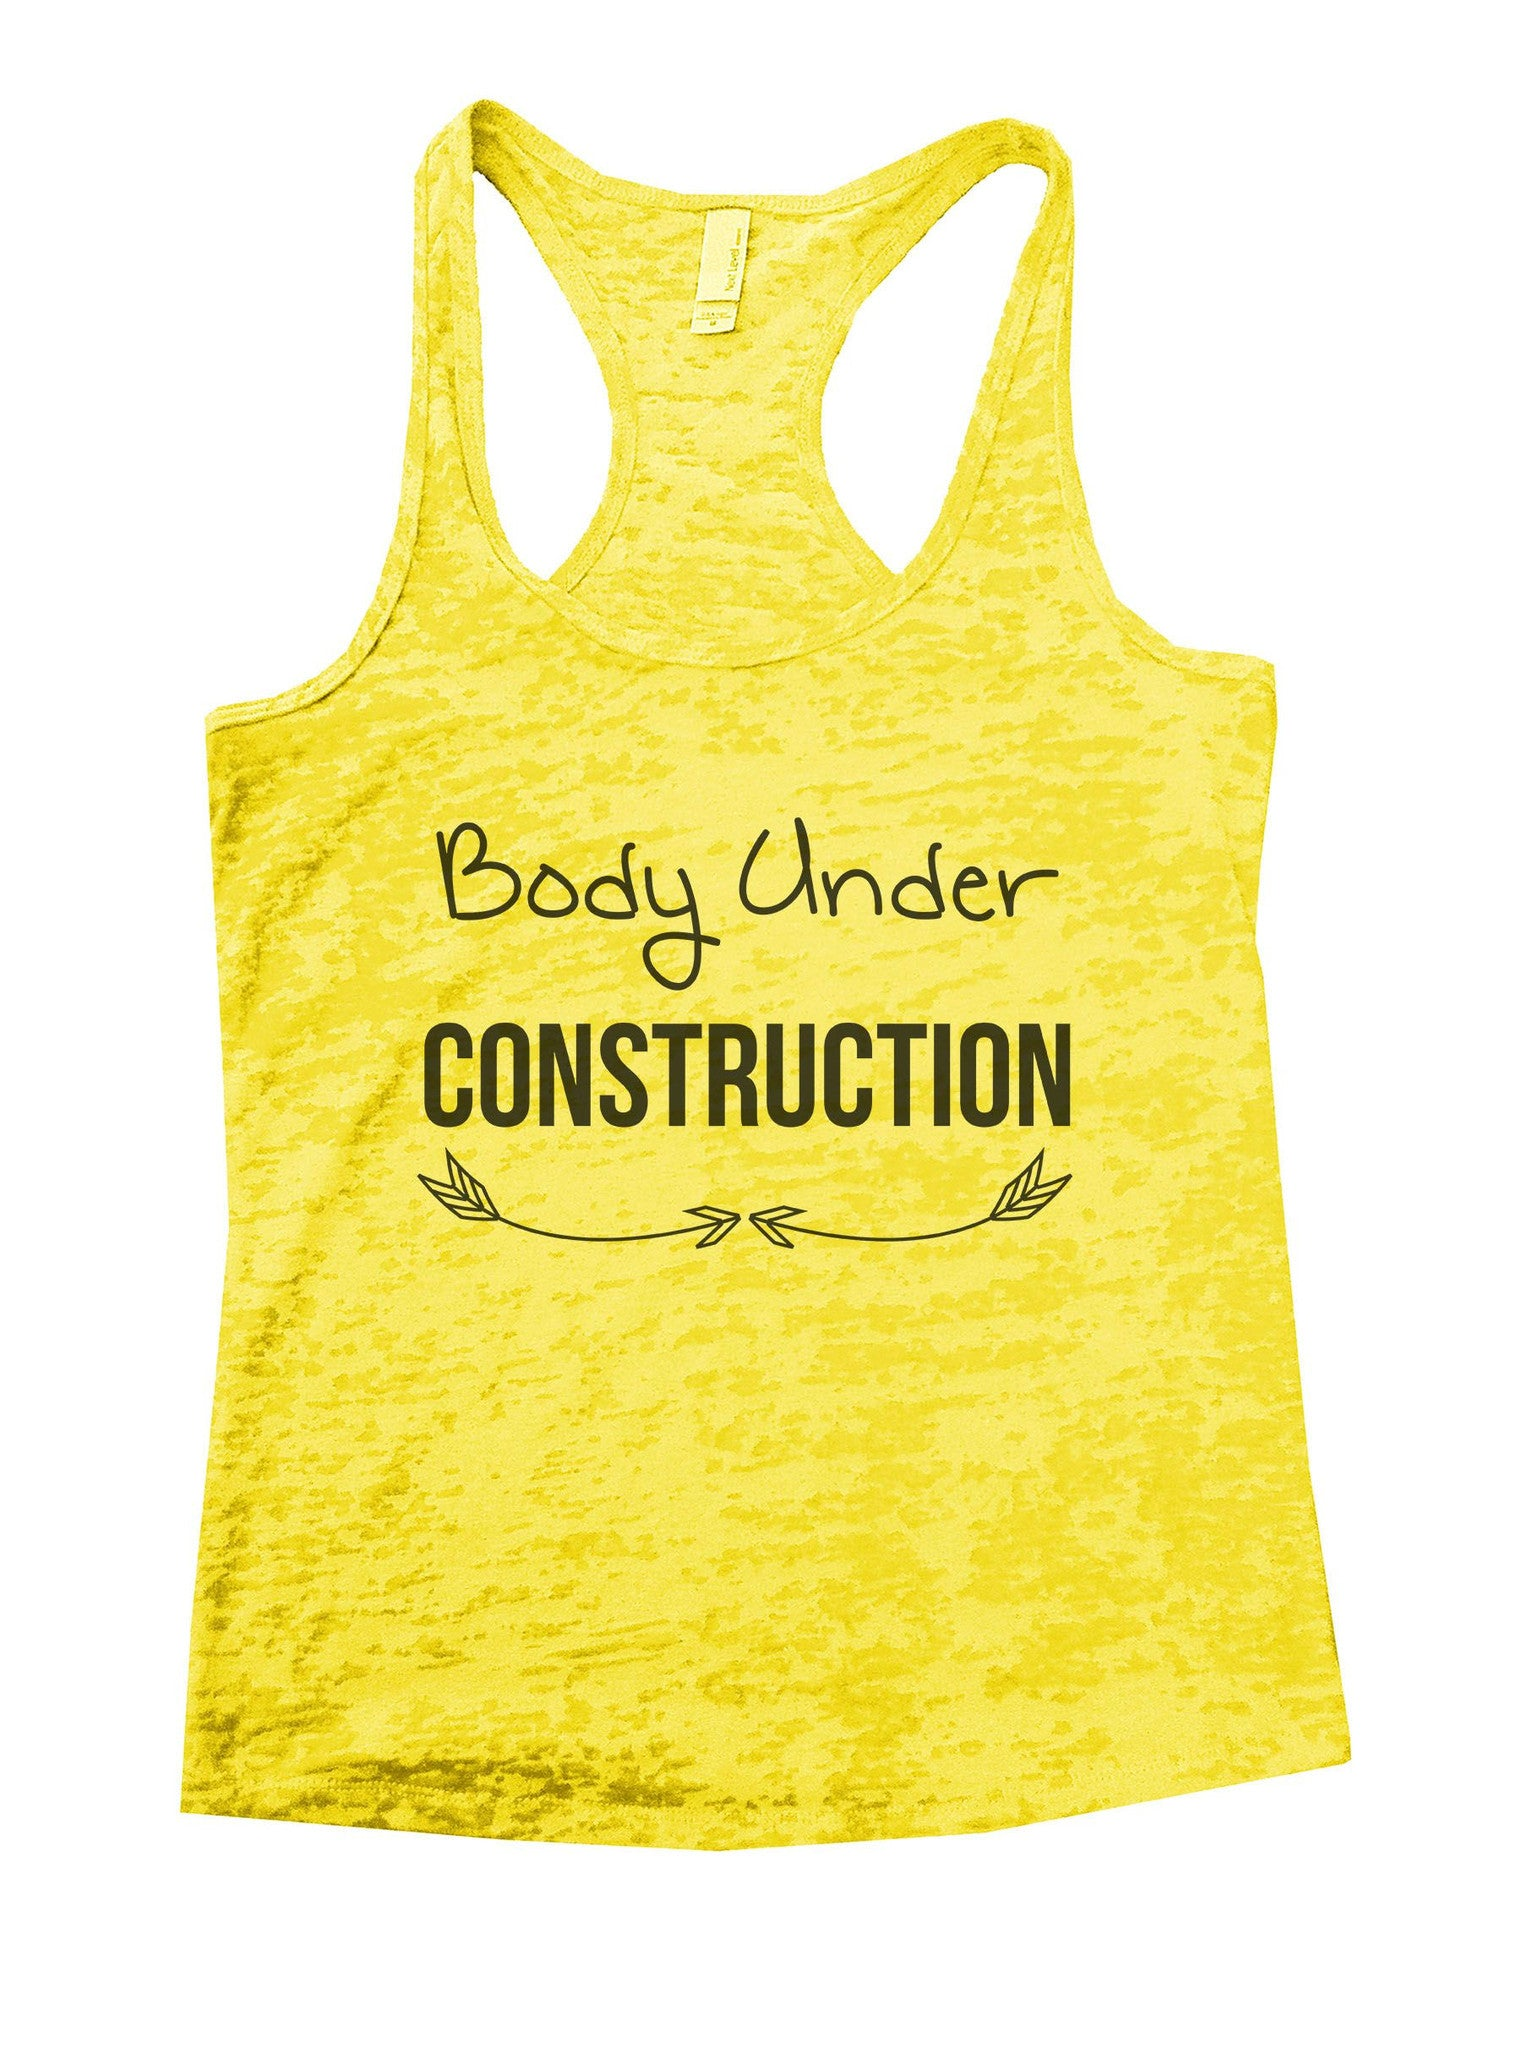 Body Under Construction Burnout Tank Top By BurnoutTankTops.com - 877 - Funny Shirts Tank Tops Burnouts and Triblends  - 7